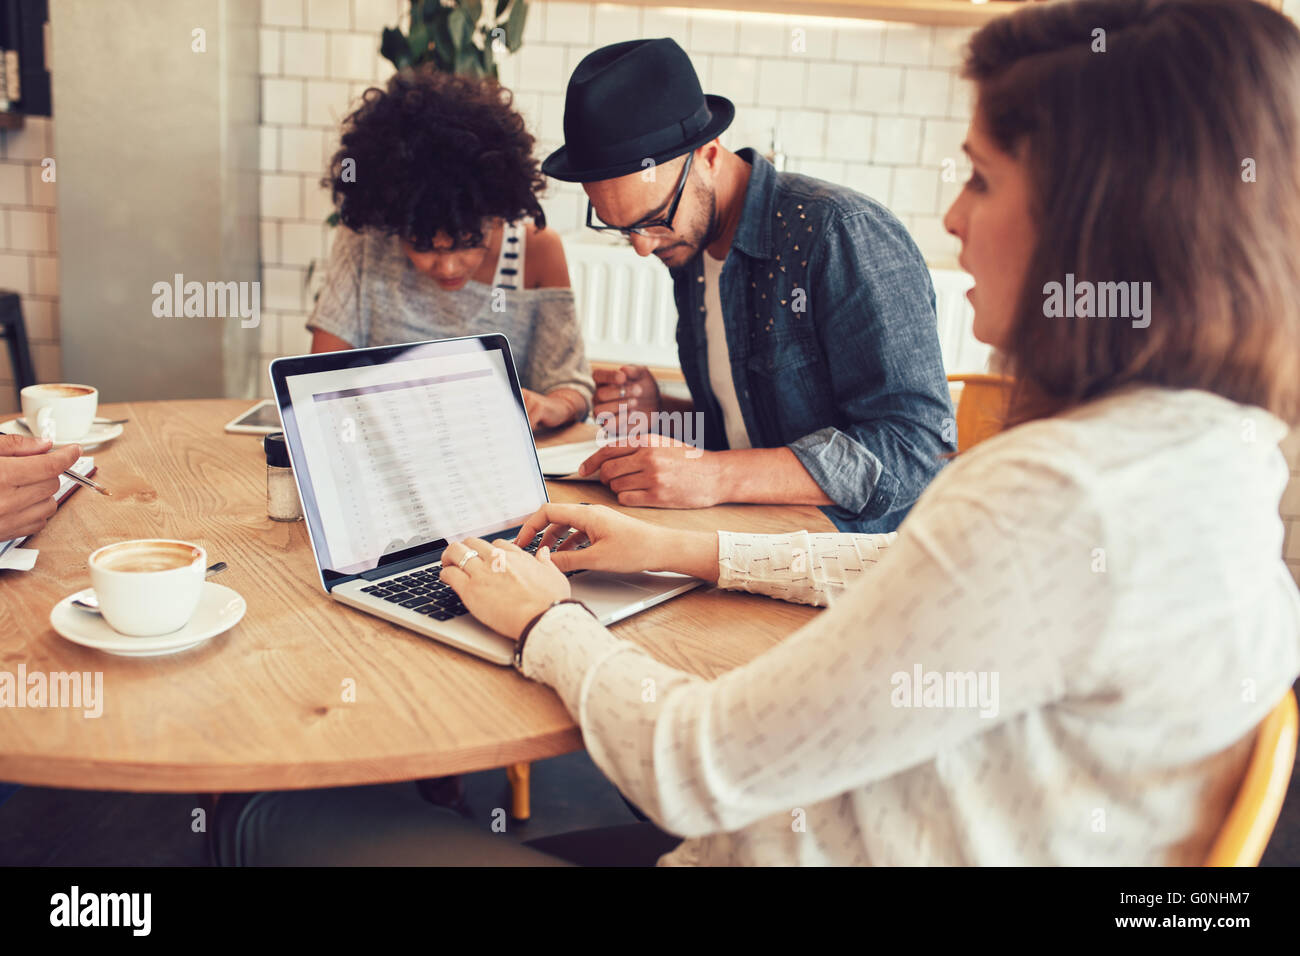 Portrait of young woman working on laptop with her friends sitting by at a coffee shop. Friends sitting around a - Stock Image